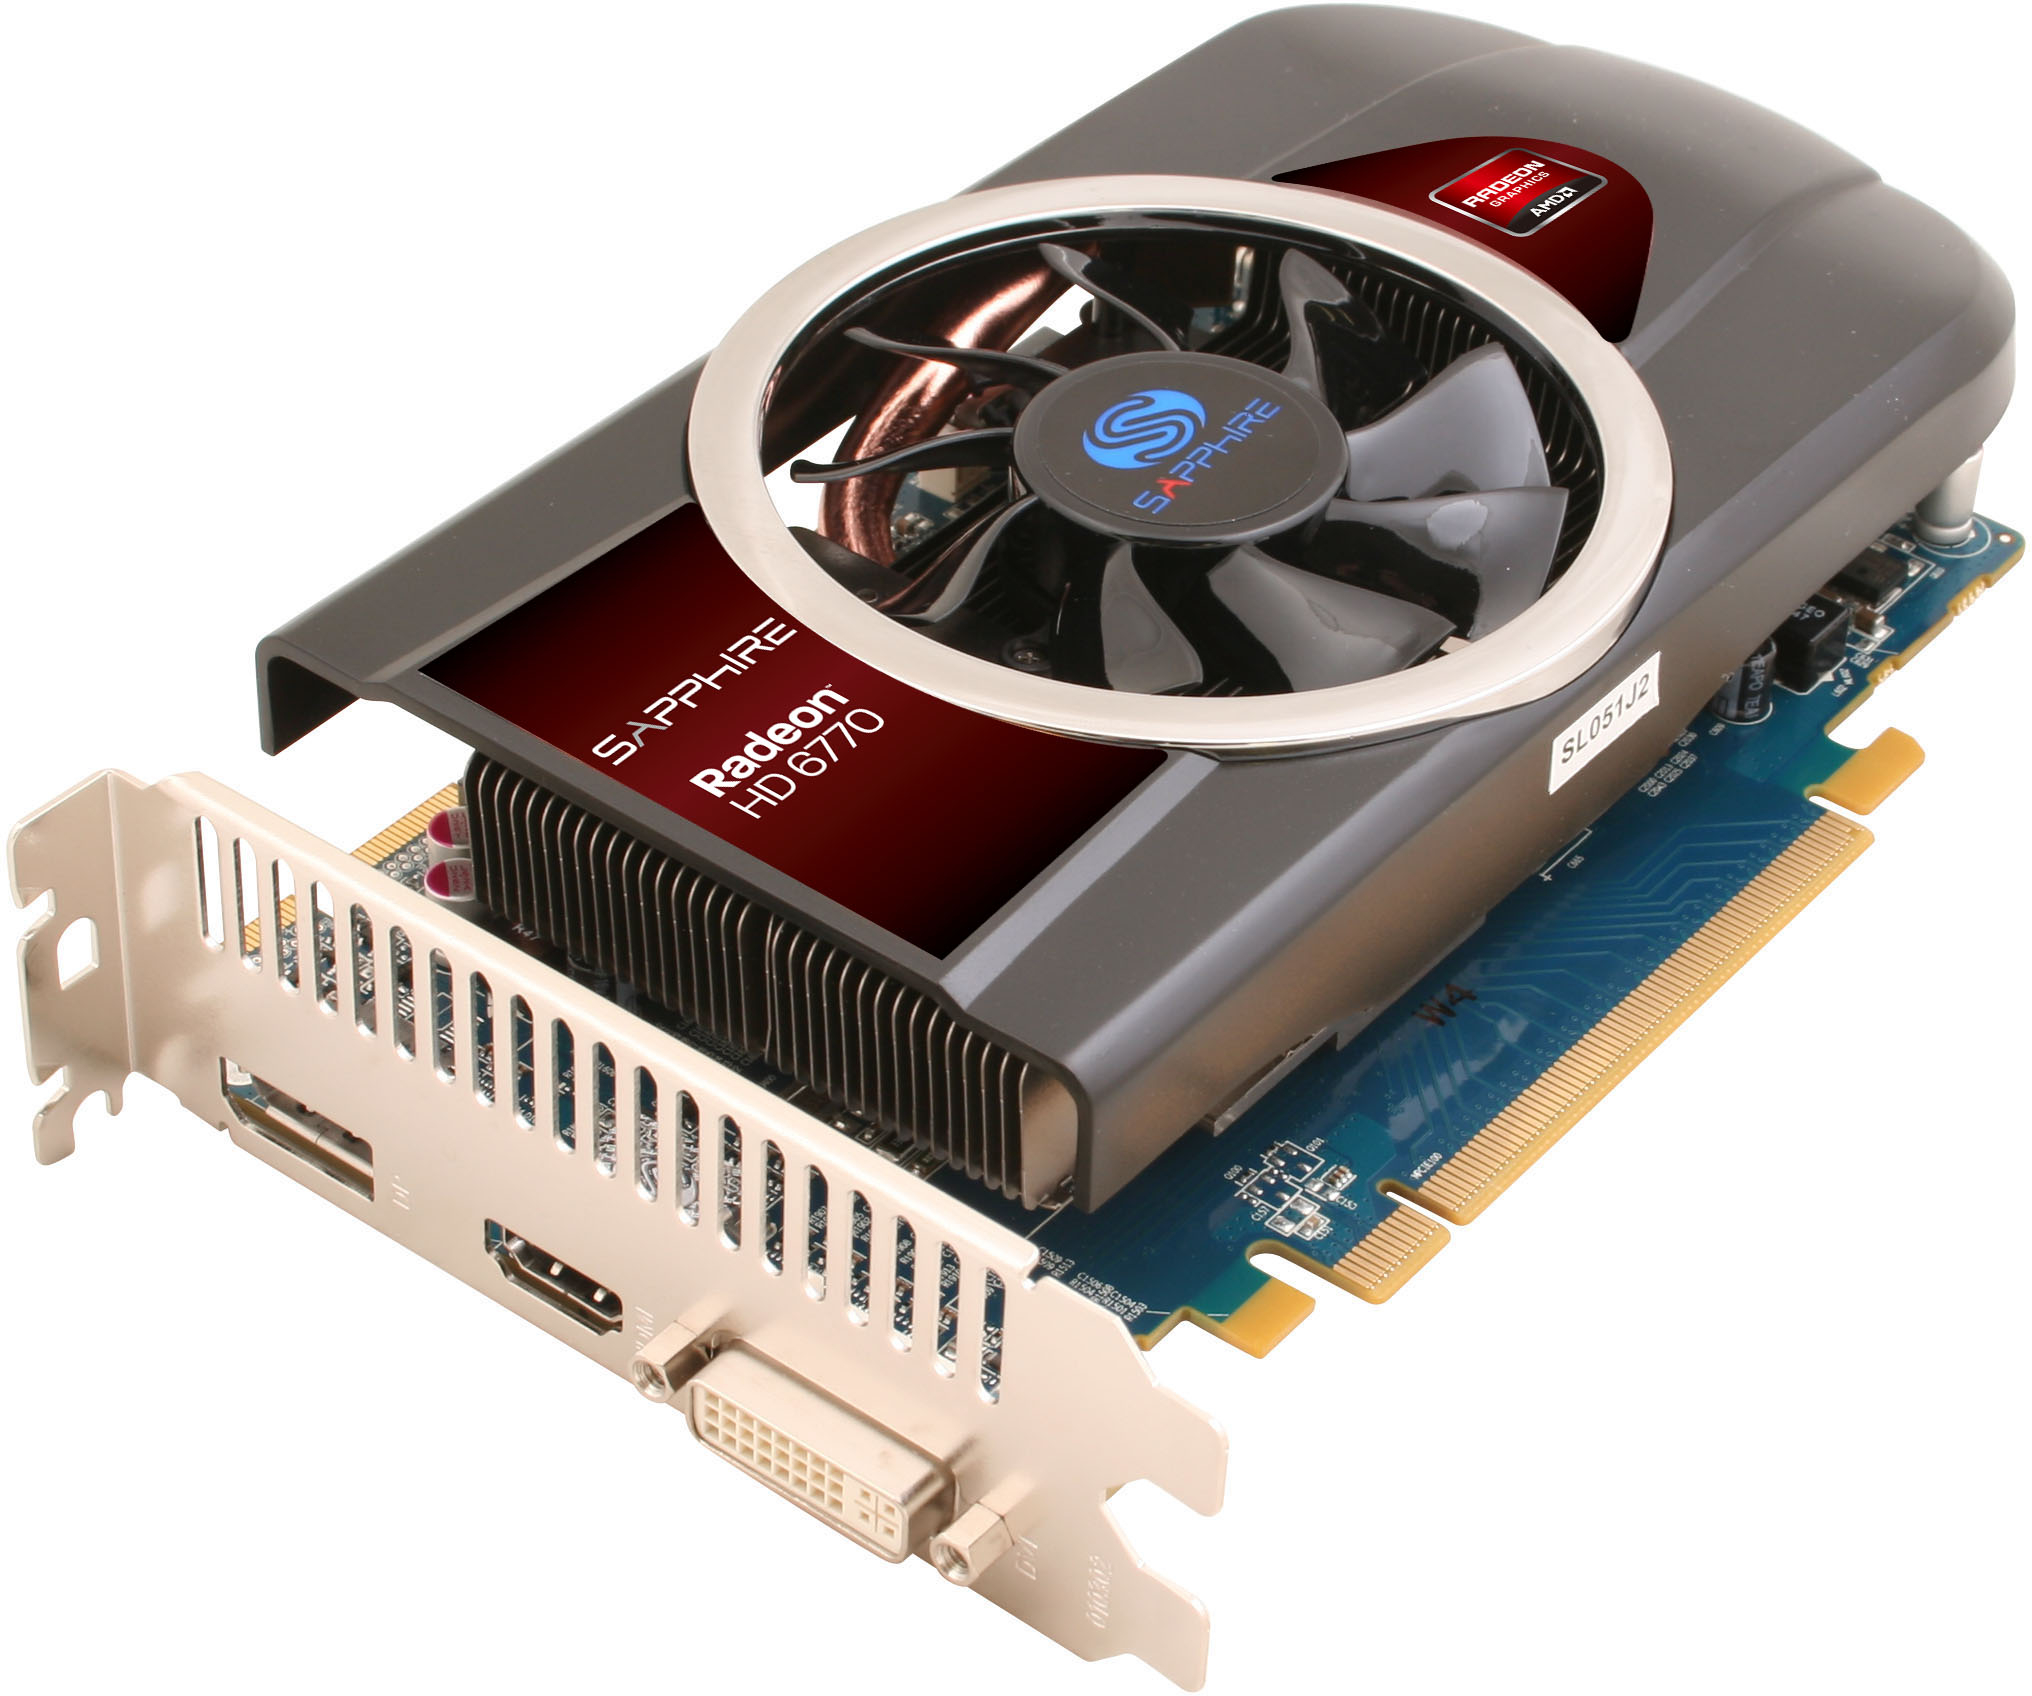 Get stunning hd gaming and computing with amd radeon hd 6750 graphics, now with blu-ray 3d